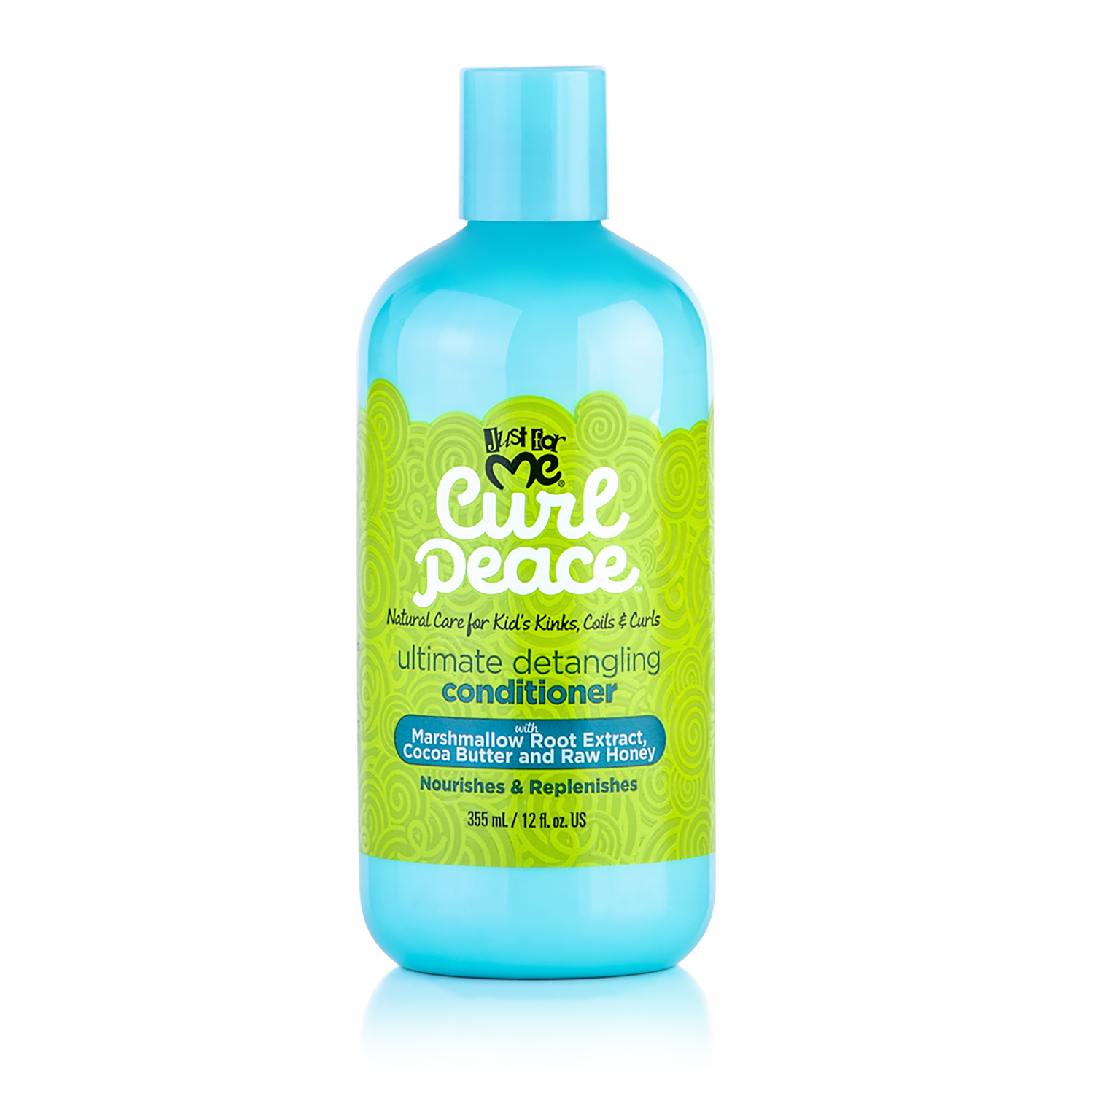 Just For Me Curl Peace Ultimate Detangling Conditioner Nourish & Replenish 12oz